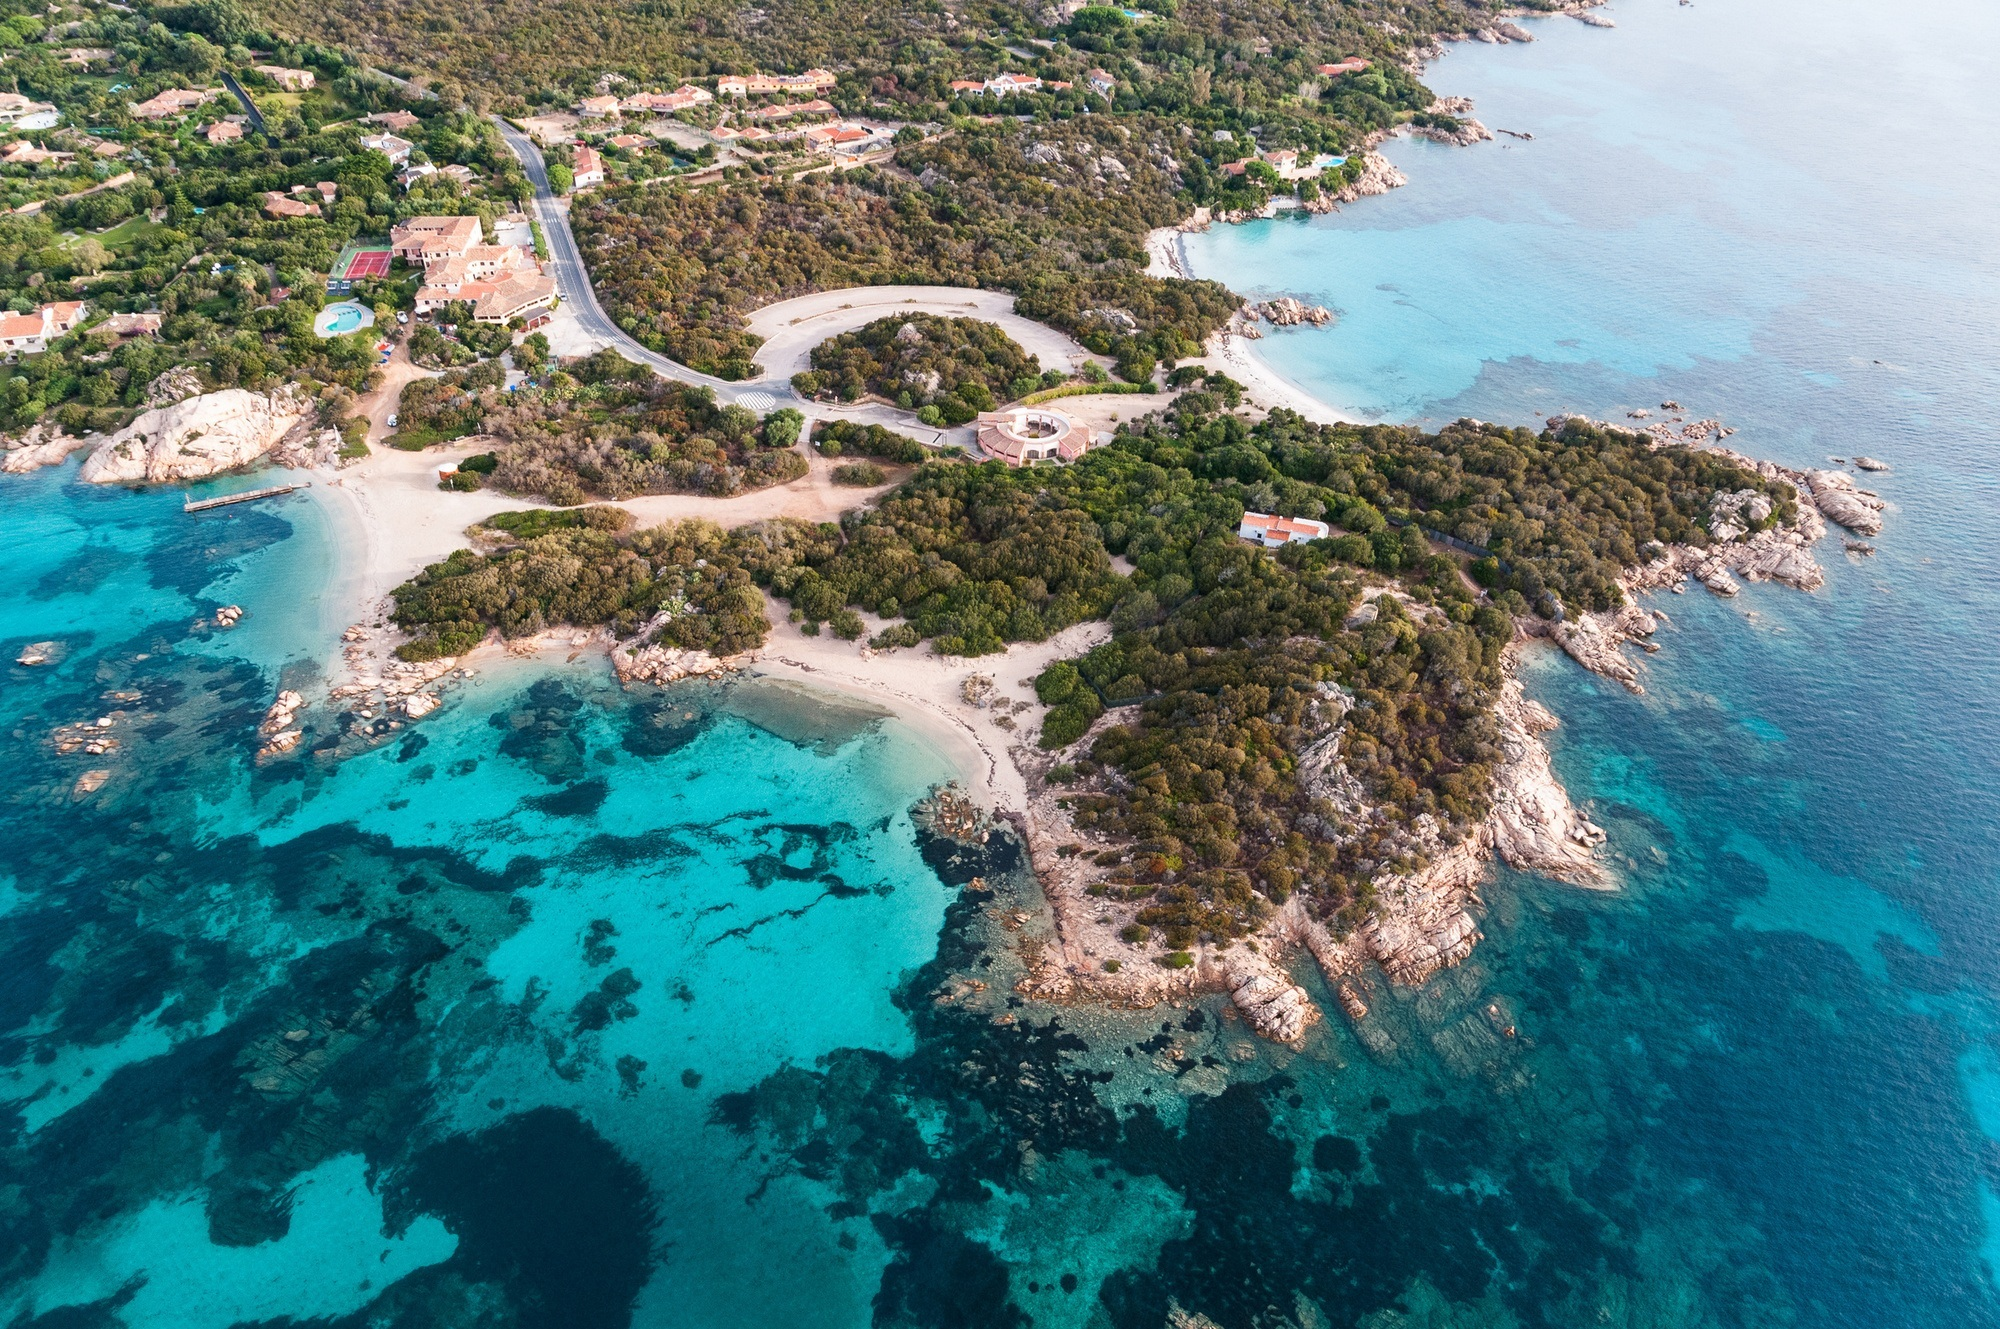 costa smeralda sardinia hotels and beaches for your